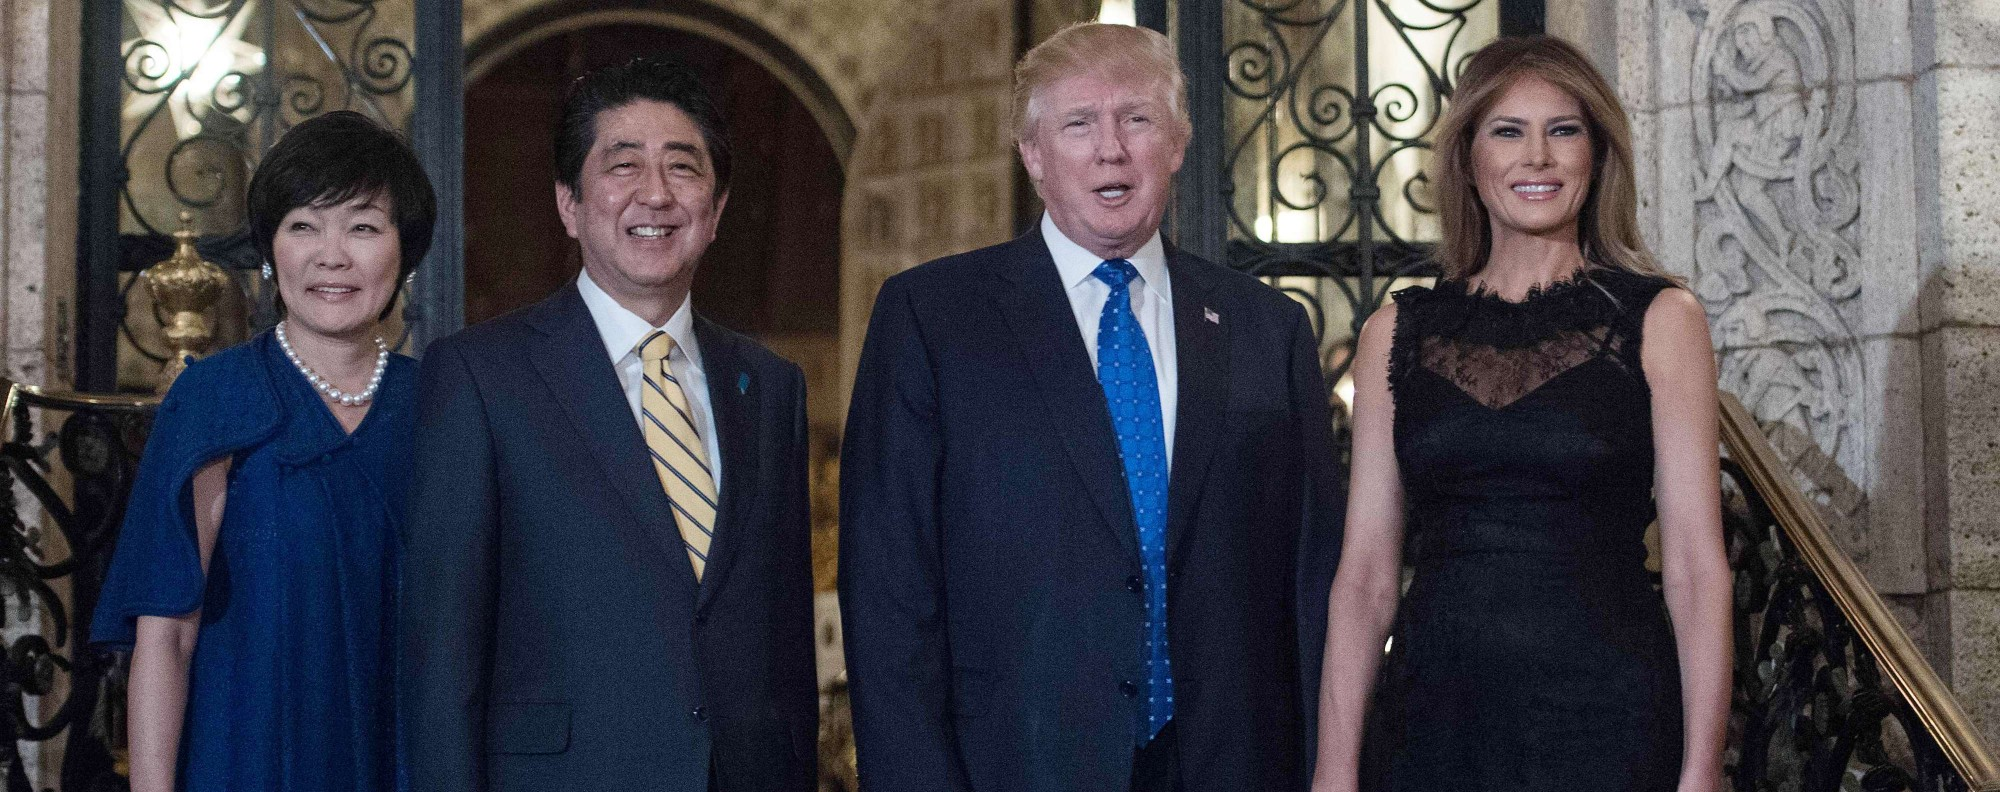 Japanese Prime Minister Shinzo Abe and his wife Akke Abe with US President Donald Trump and First Lady Melania Trump at the Mar-a-Lago resort in Palm Beach, Florida. Photo: AFP